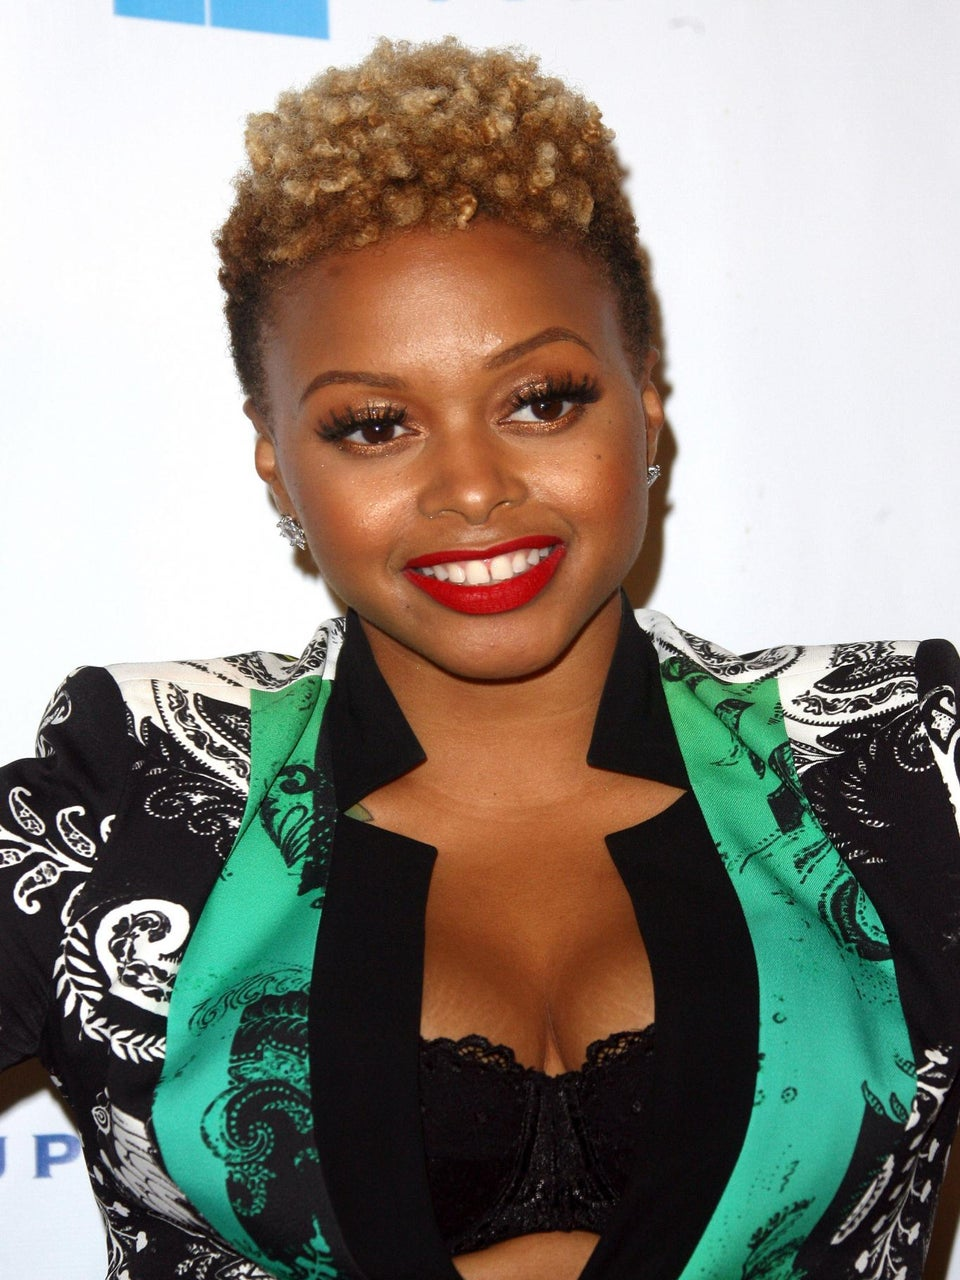 Chrisette Michele Regrets Doing Reality TV